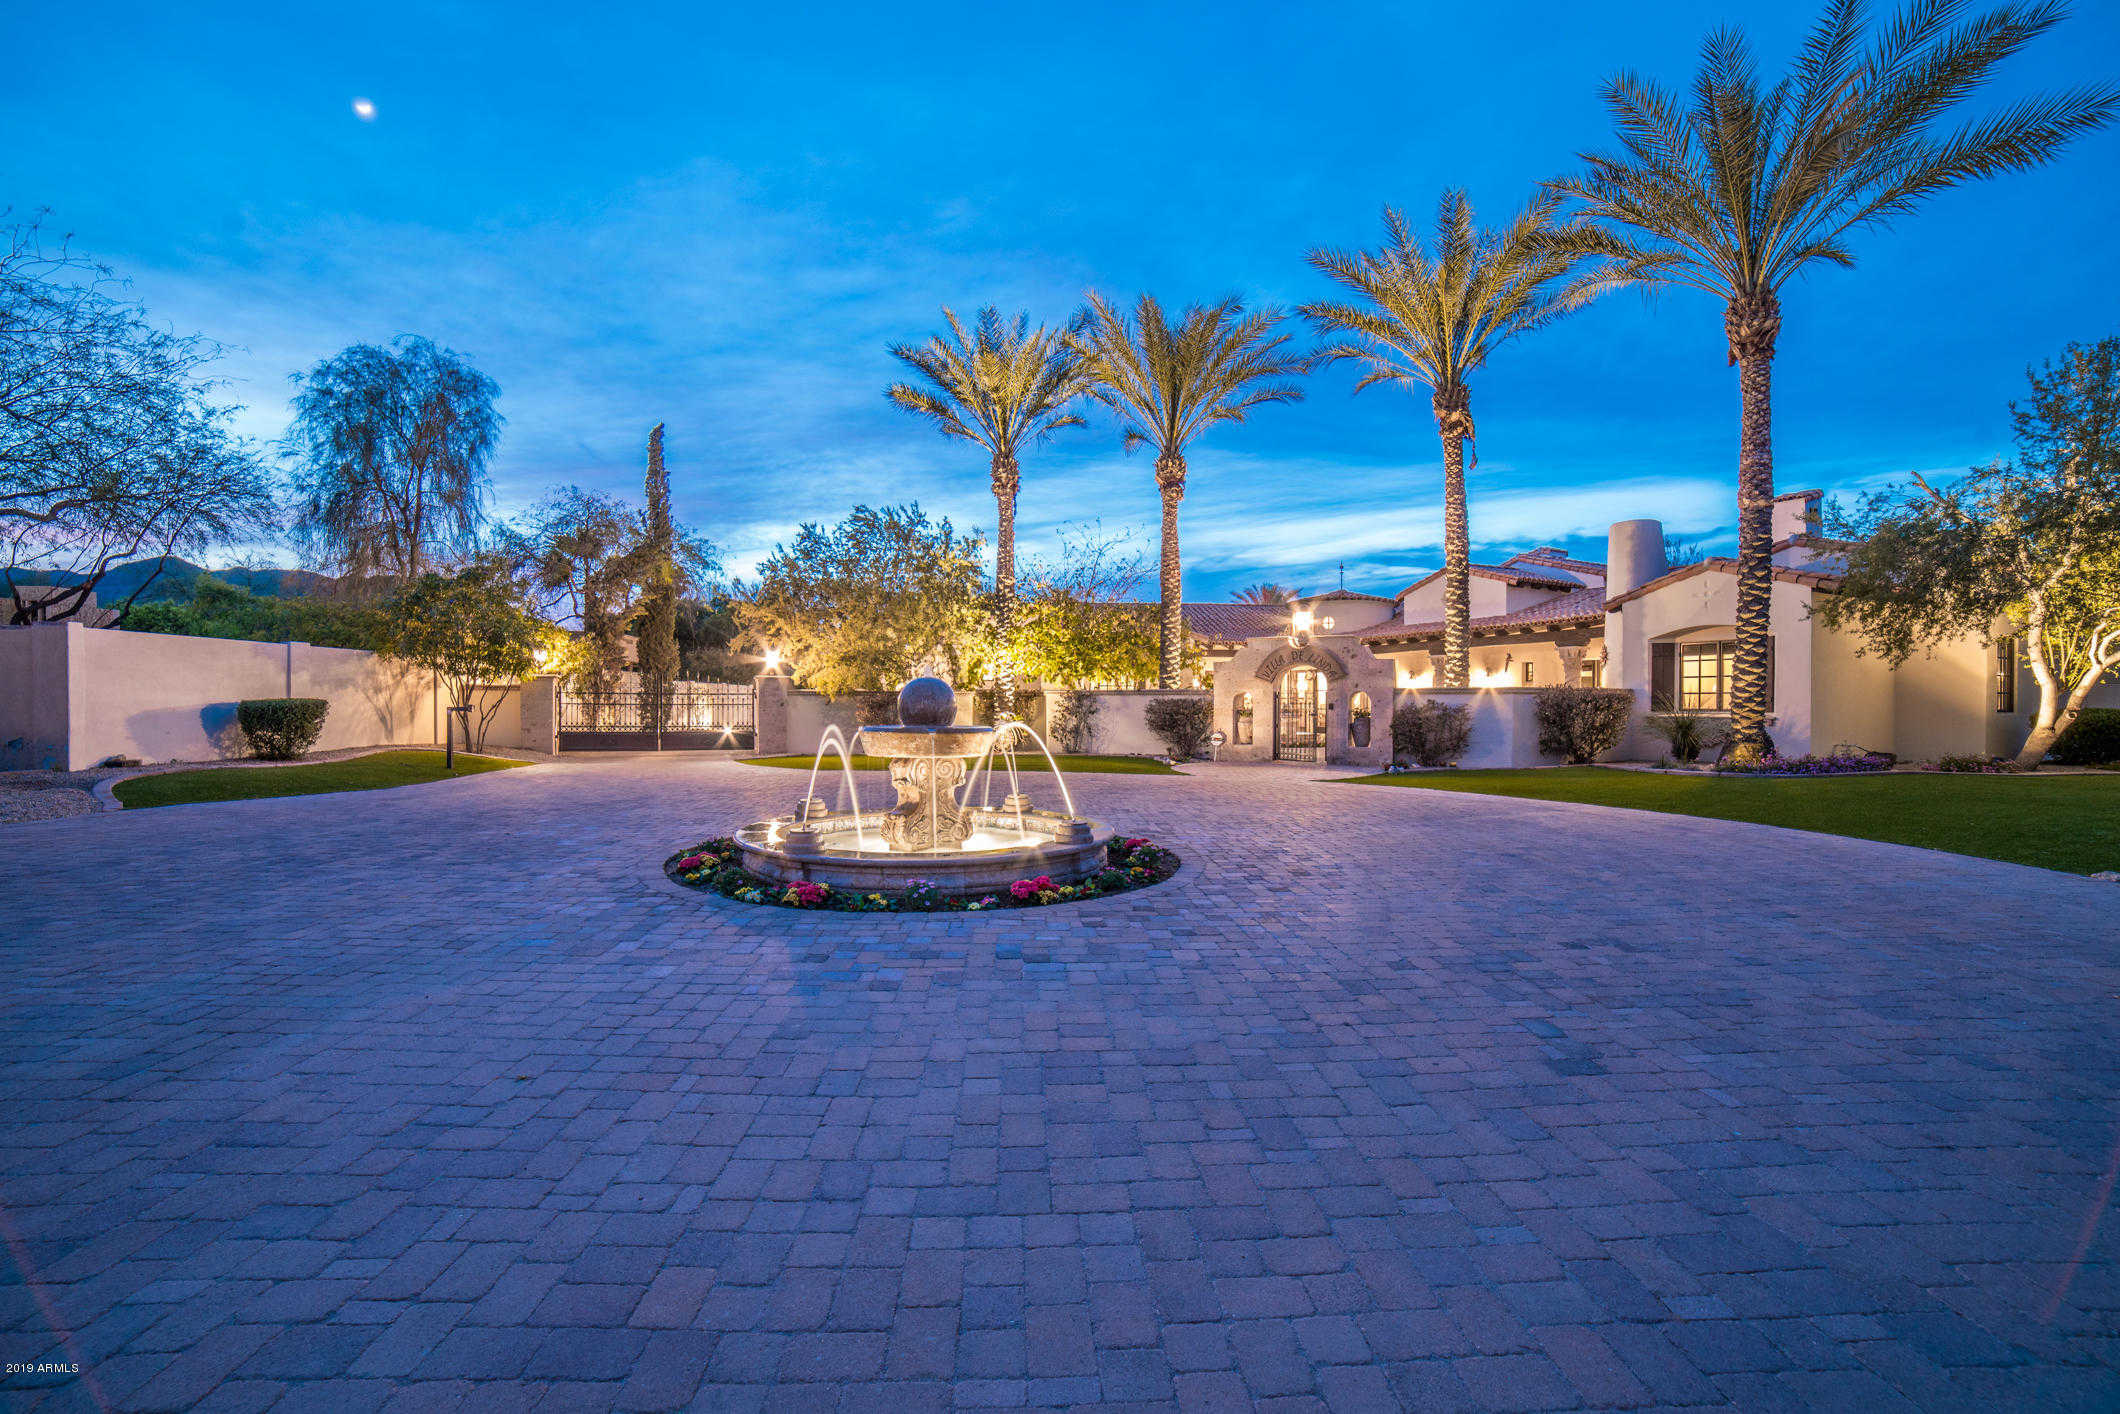 $3,695,900 - 5Br/6Ba - Home for Sale in Mockingbird Lane Estates, Paradise Valley